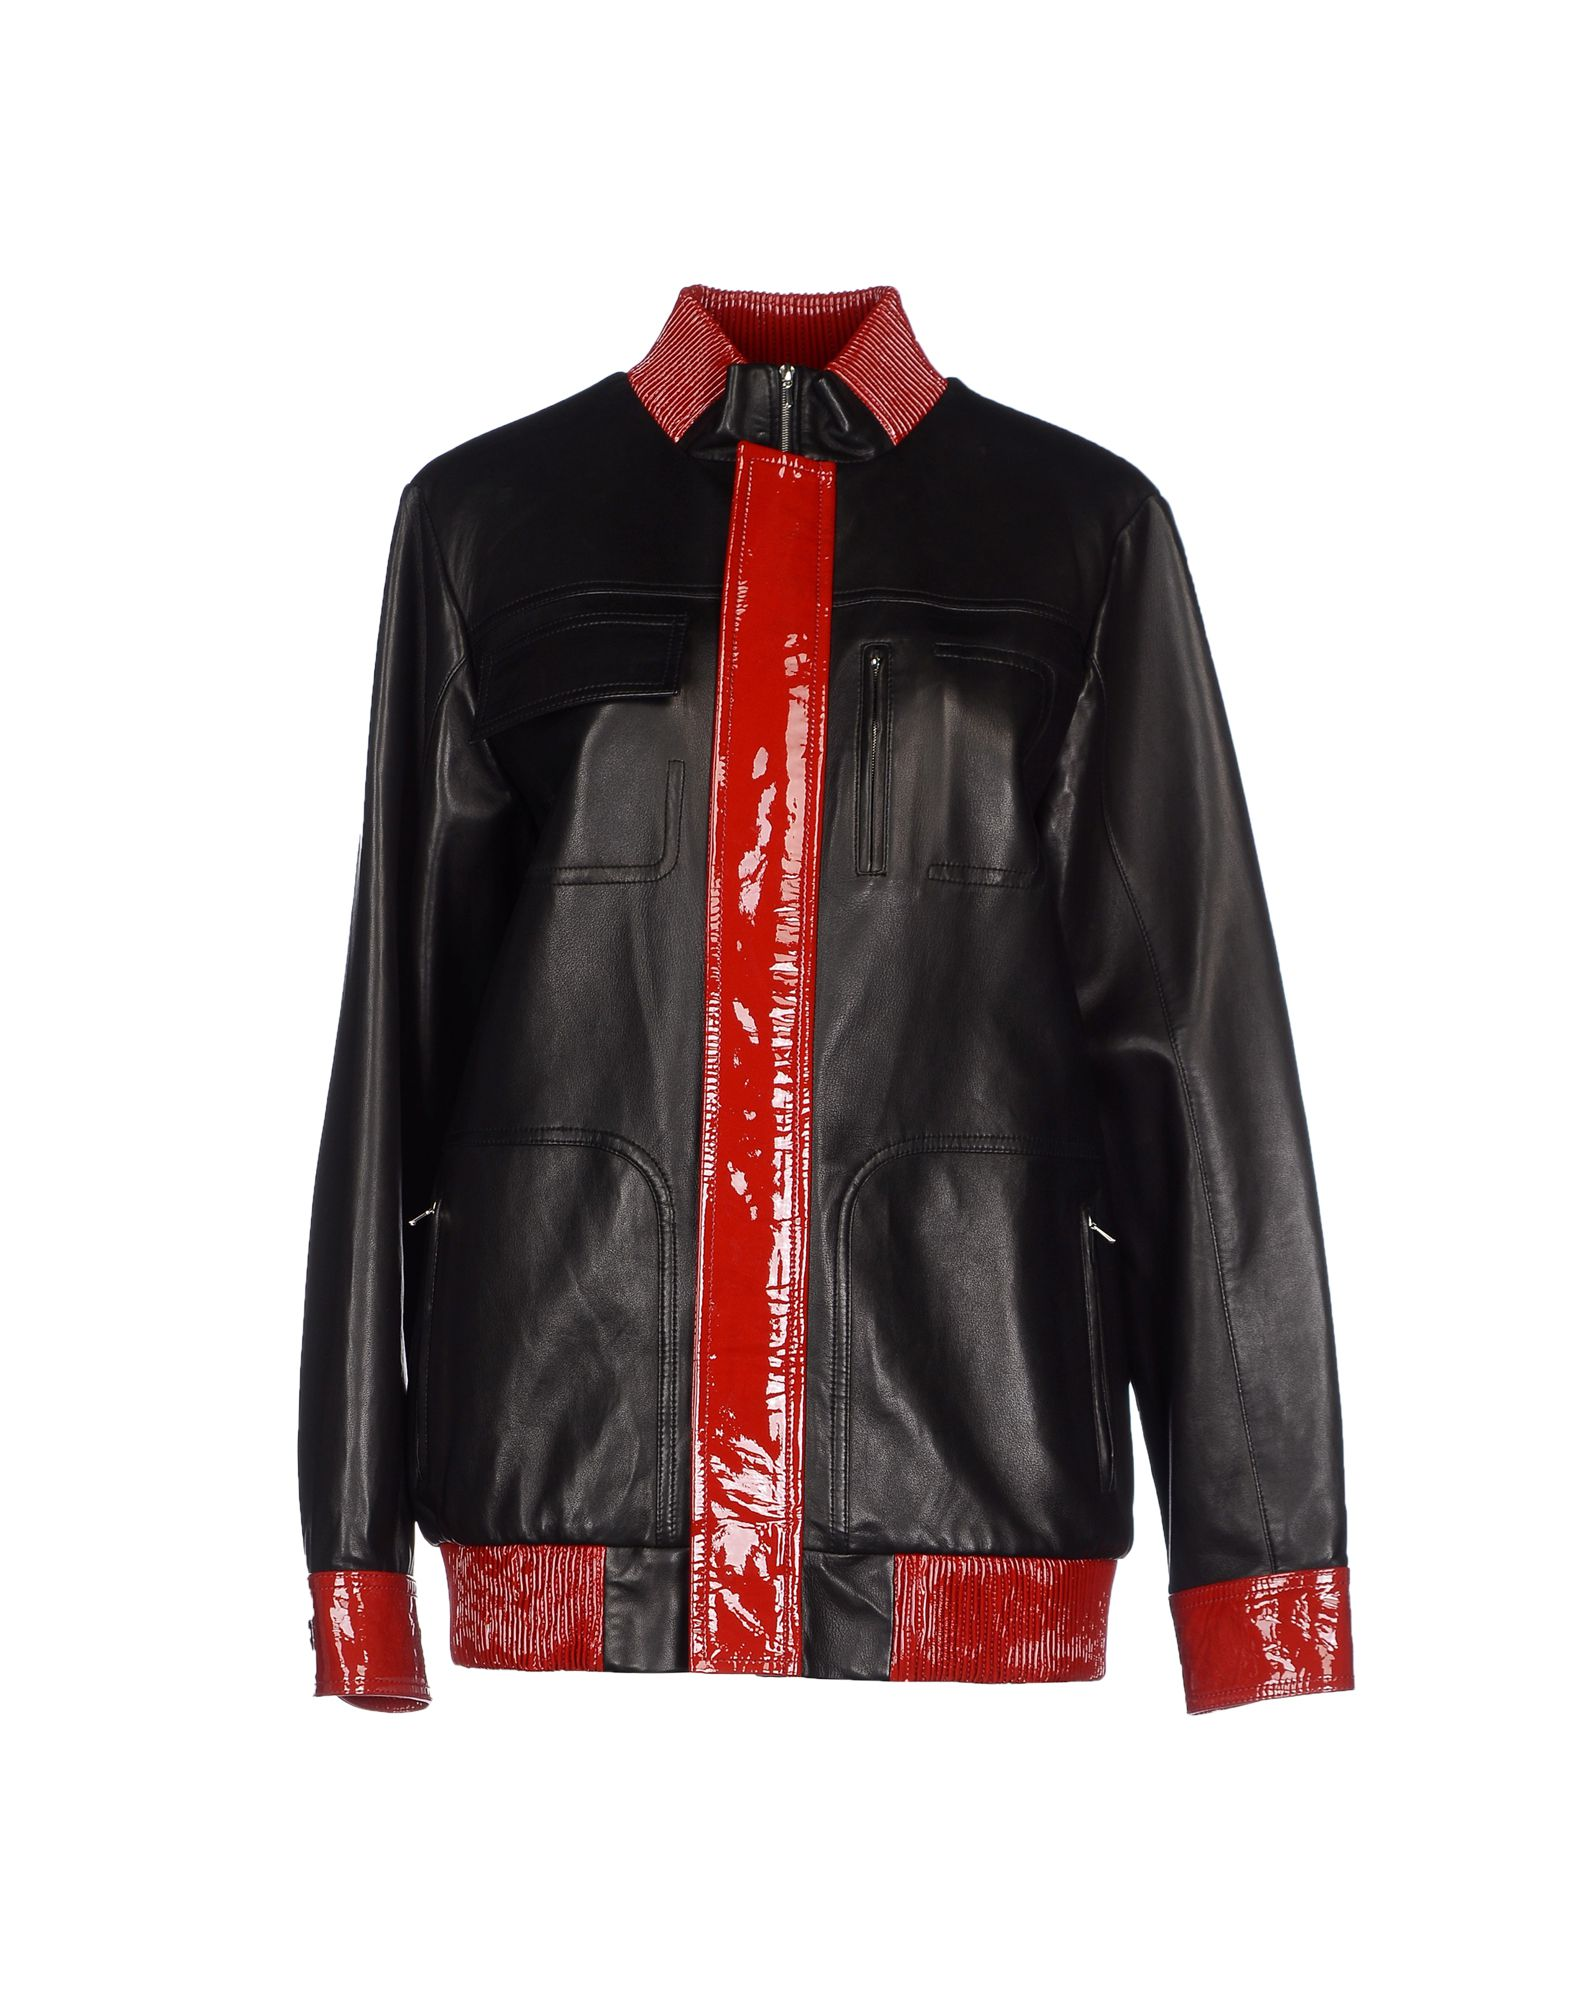 ANTHONY VACCARELLO Leather Jacket in Black